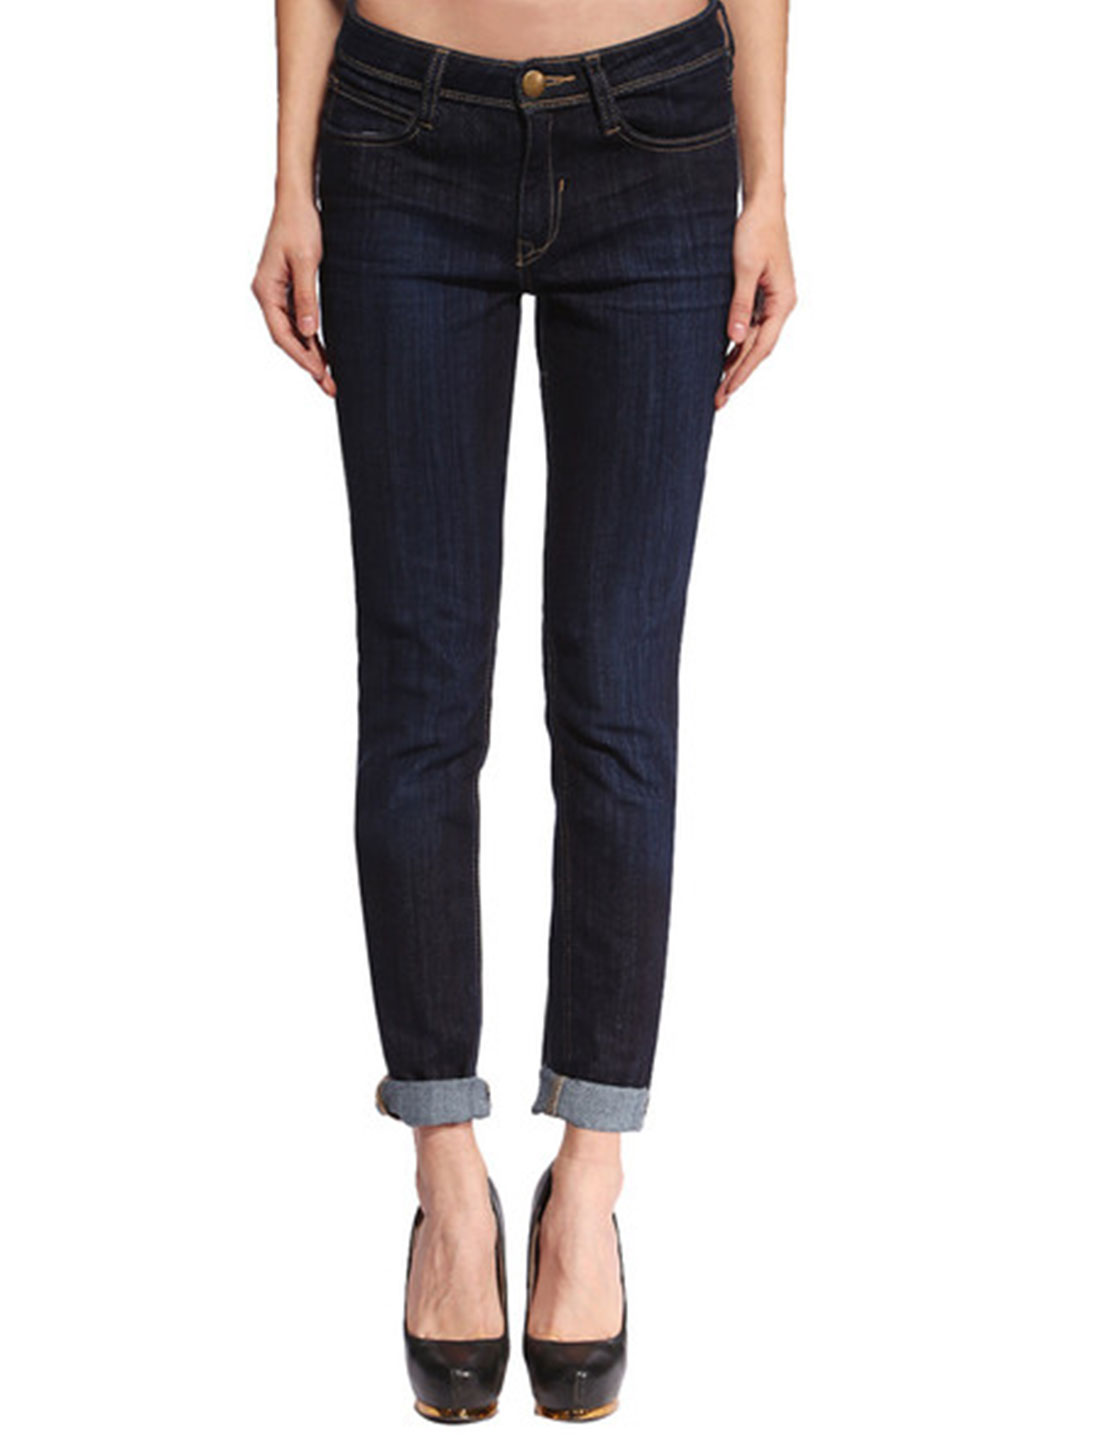 ANLADIA Authorized Women Low Rise Stretchy Skinny Jeans Blue S